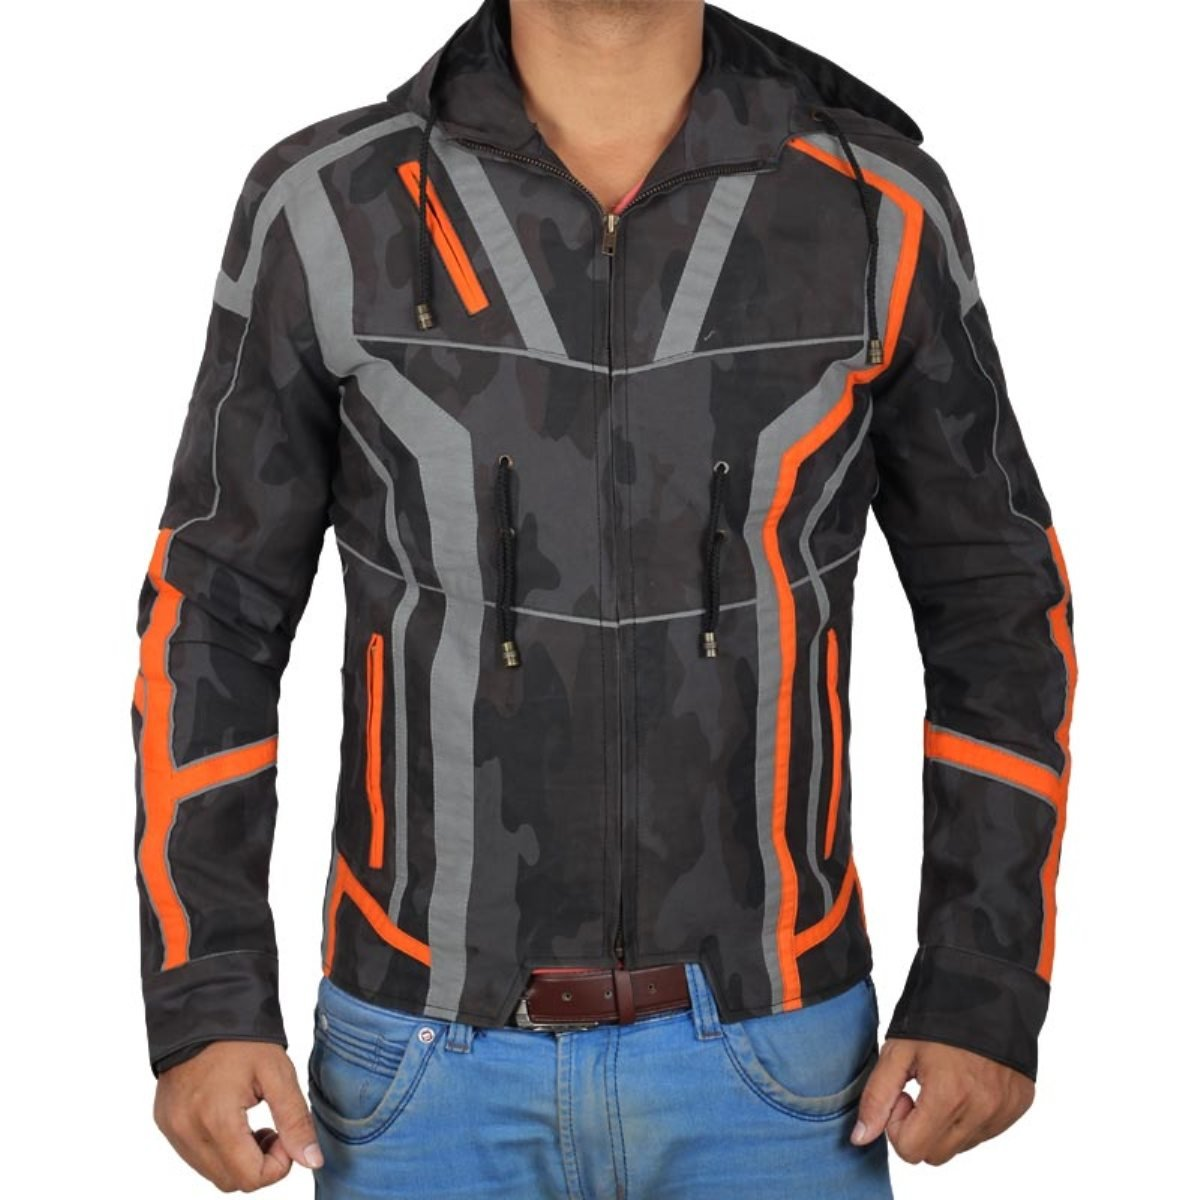 Decrum Black Robert Camouflage Superhero Jacket for Men | M